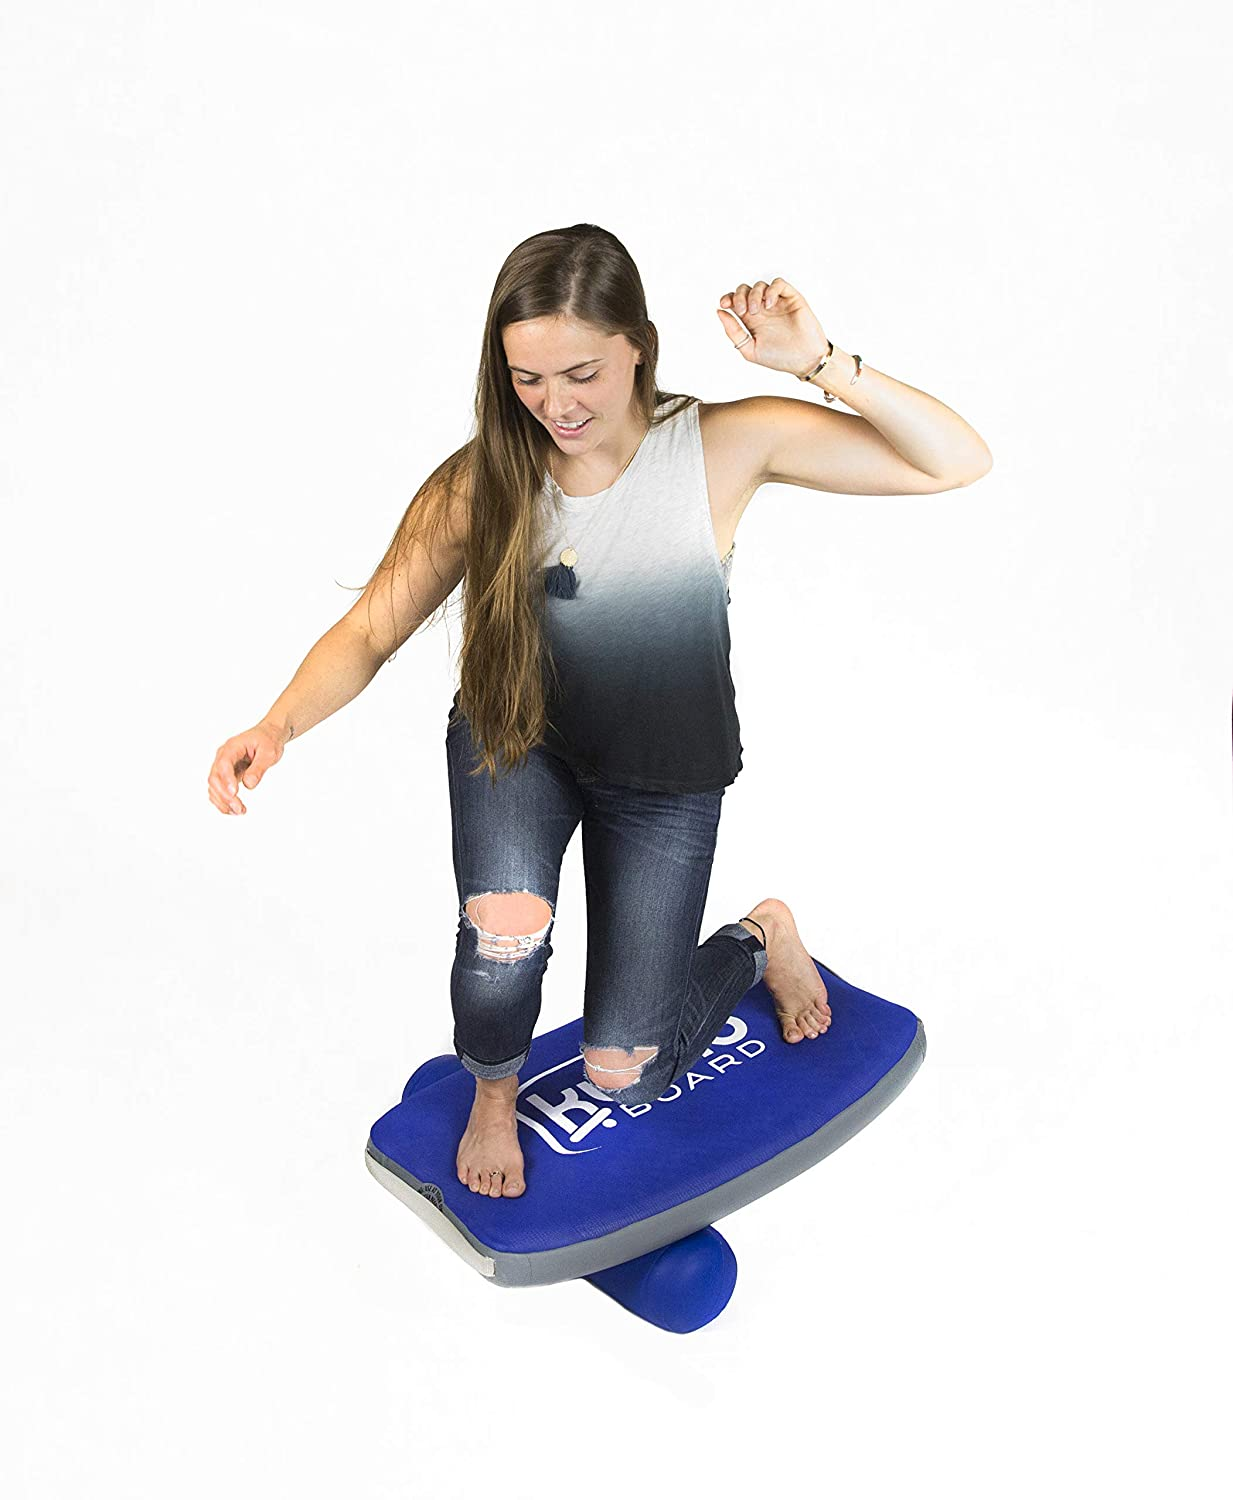 KUMO Inflatable Balance Board for Surf Training, Exercise, Physical Therapy, Standing Desk Kids – Balancing Rocker Boards with Roller – Soft Inflatable Surfing Trainer Improves Balance Strength